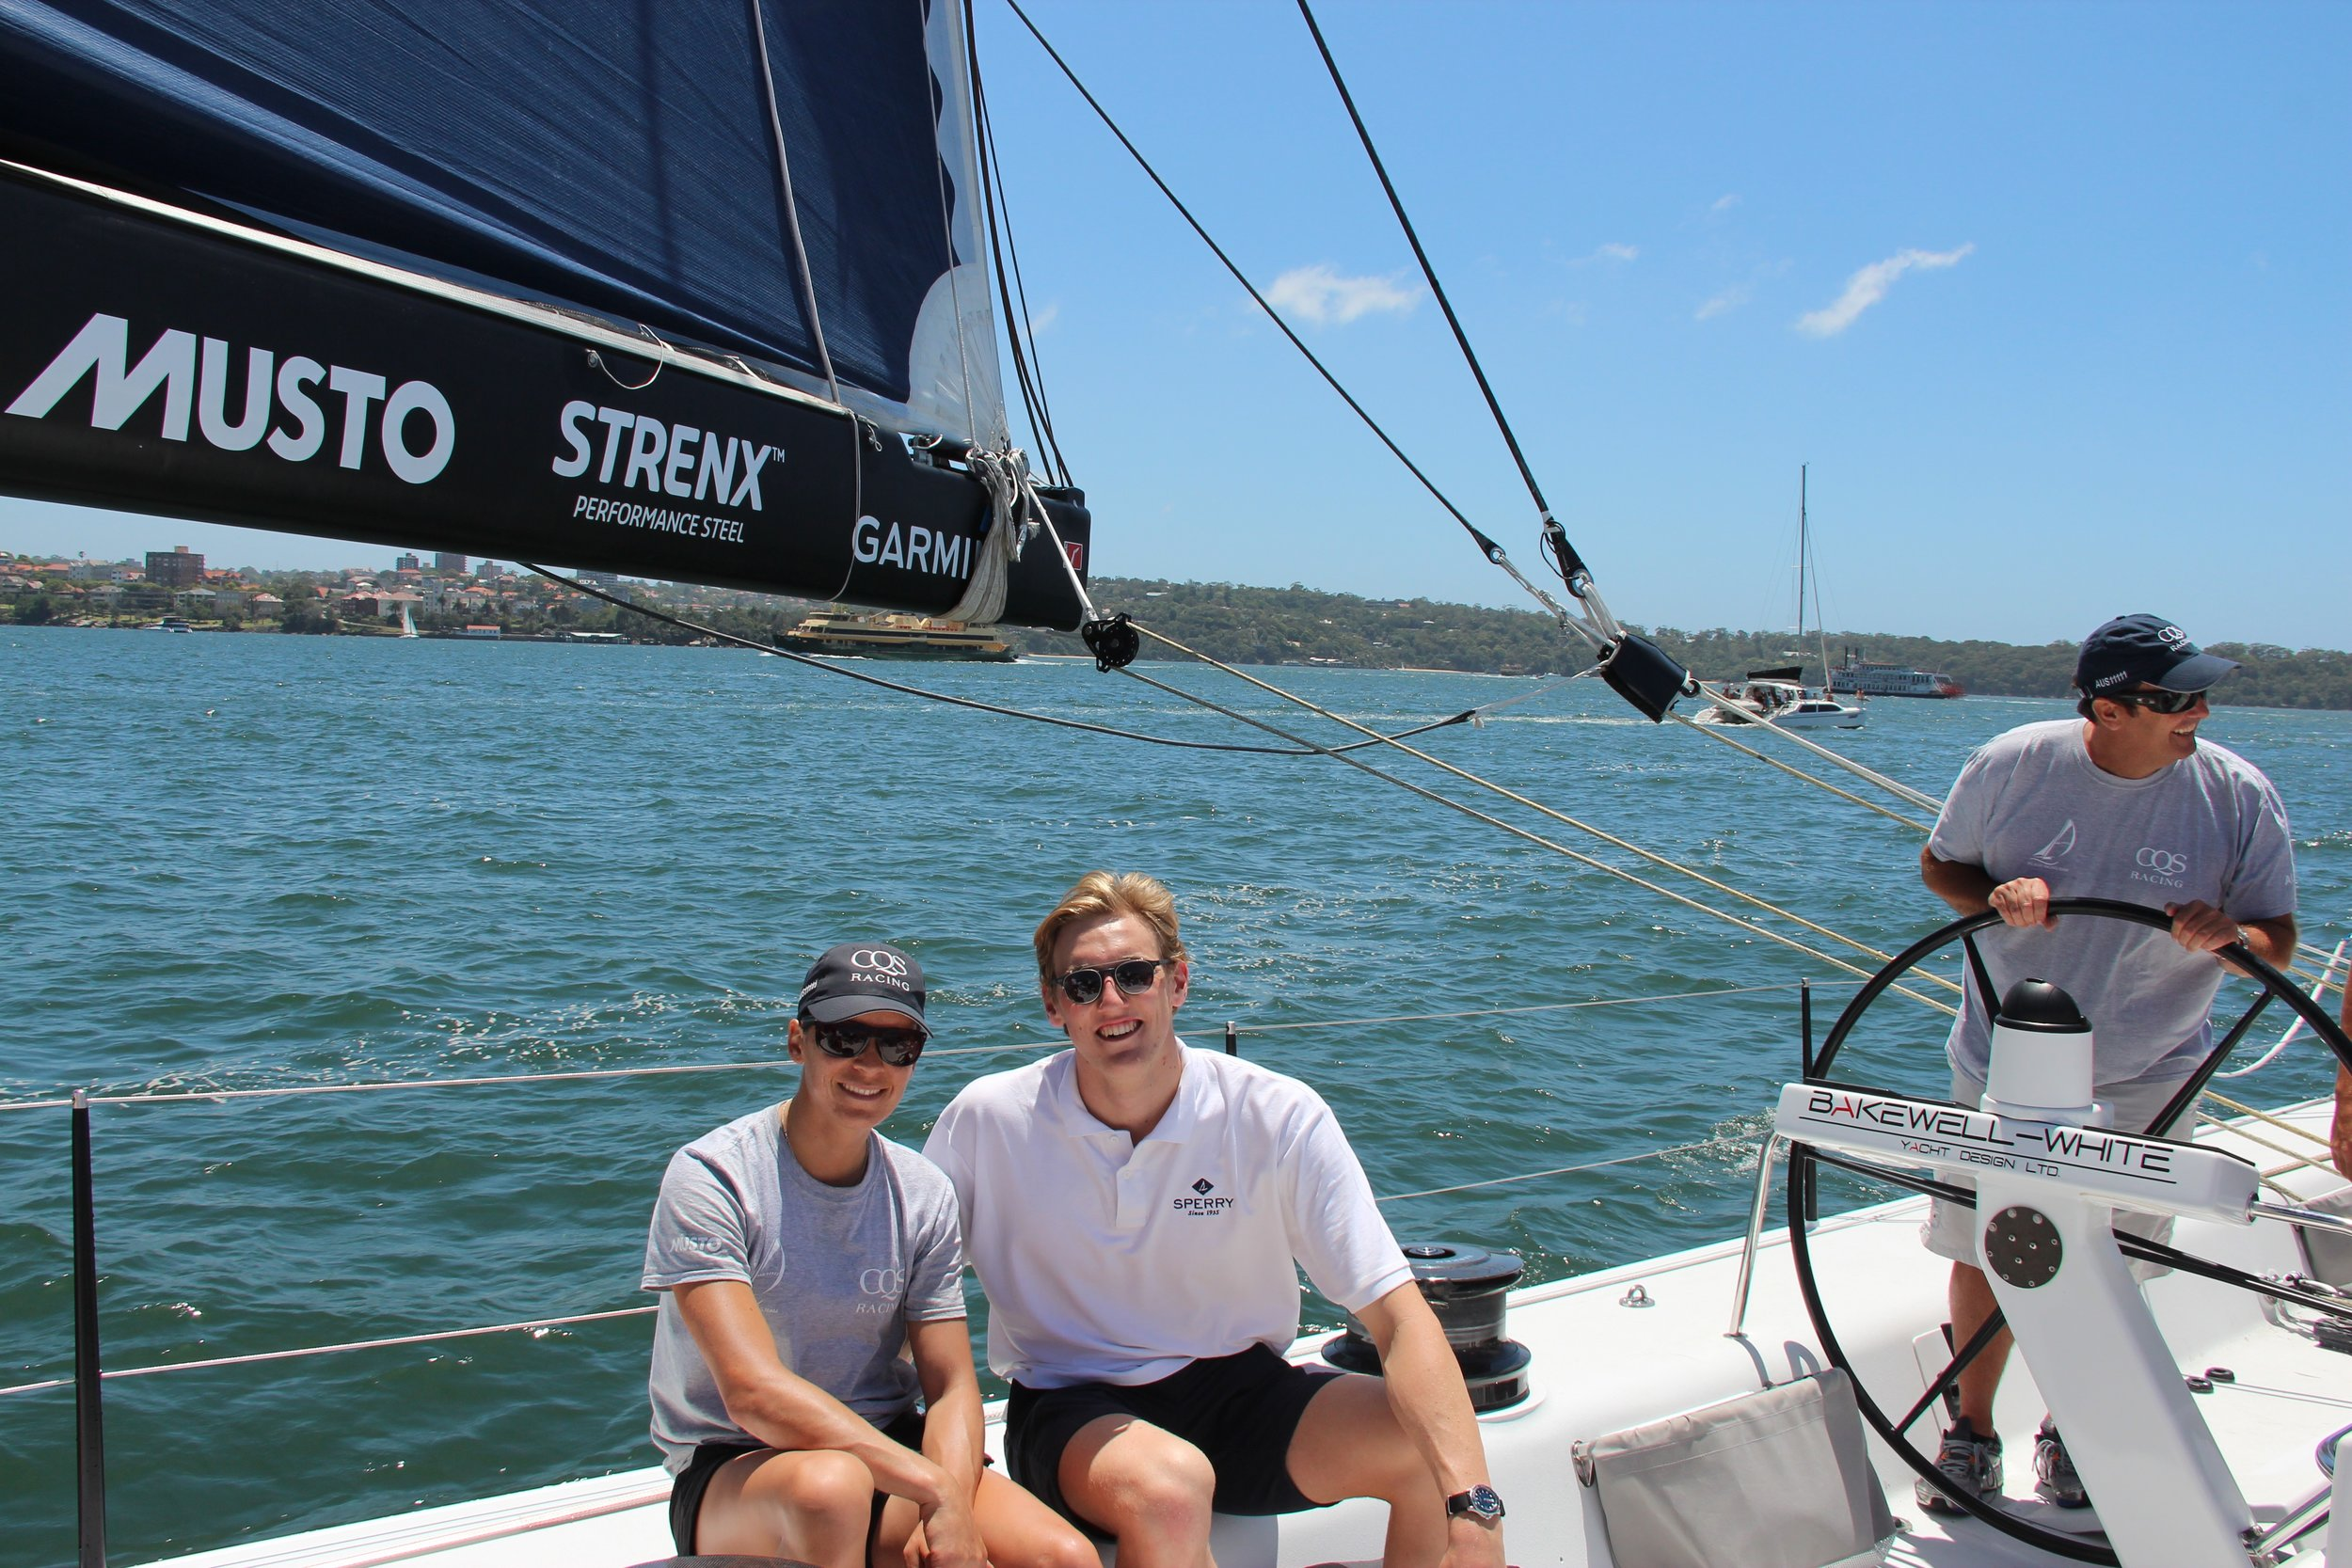 Olympic medalists Mark Horton and Crew member Jo Aleh on board CQS